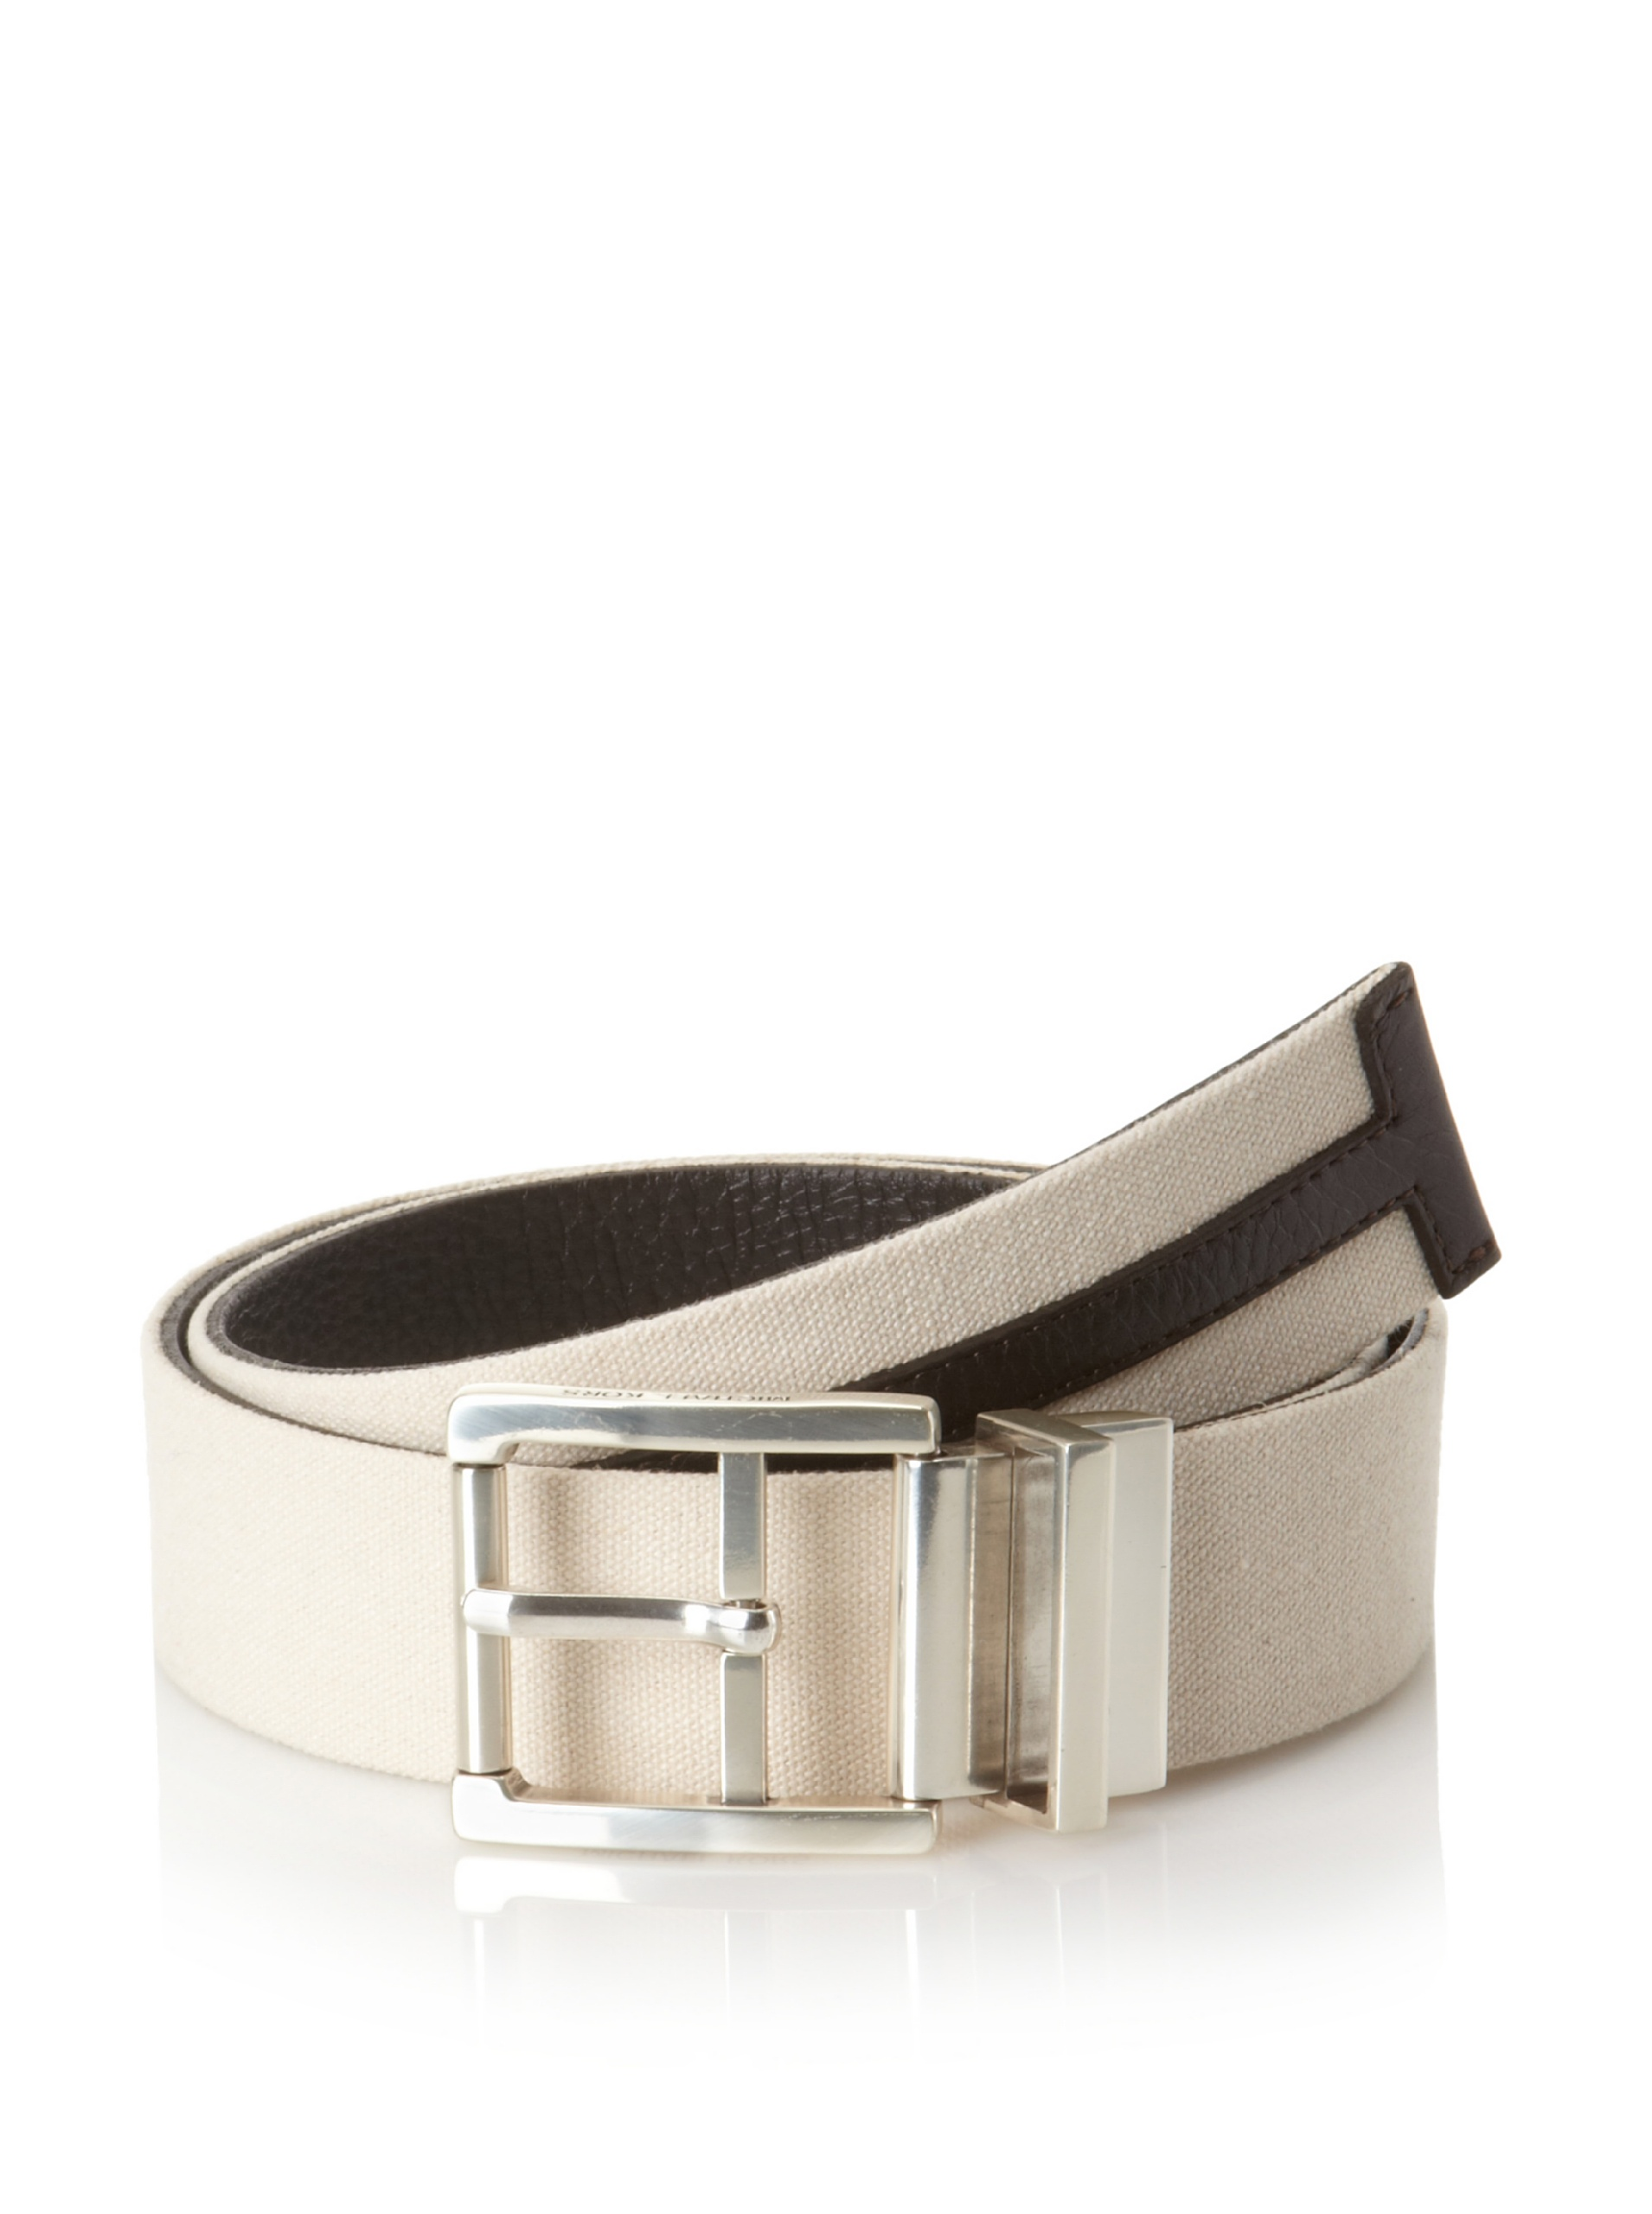 Michael Kors Men's Reversible Belt (Brown)